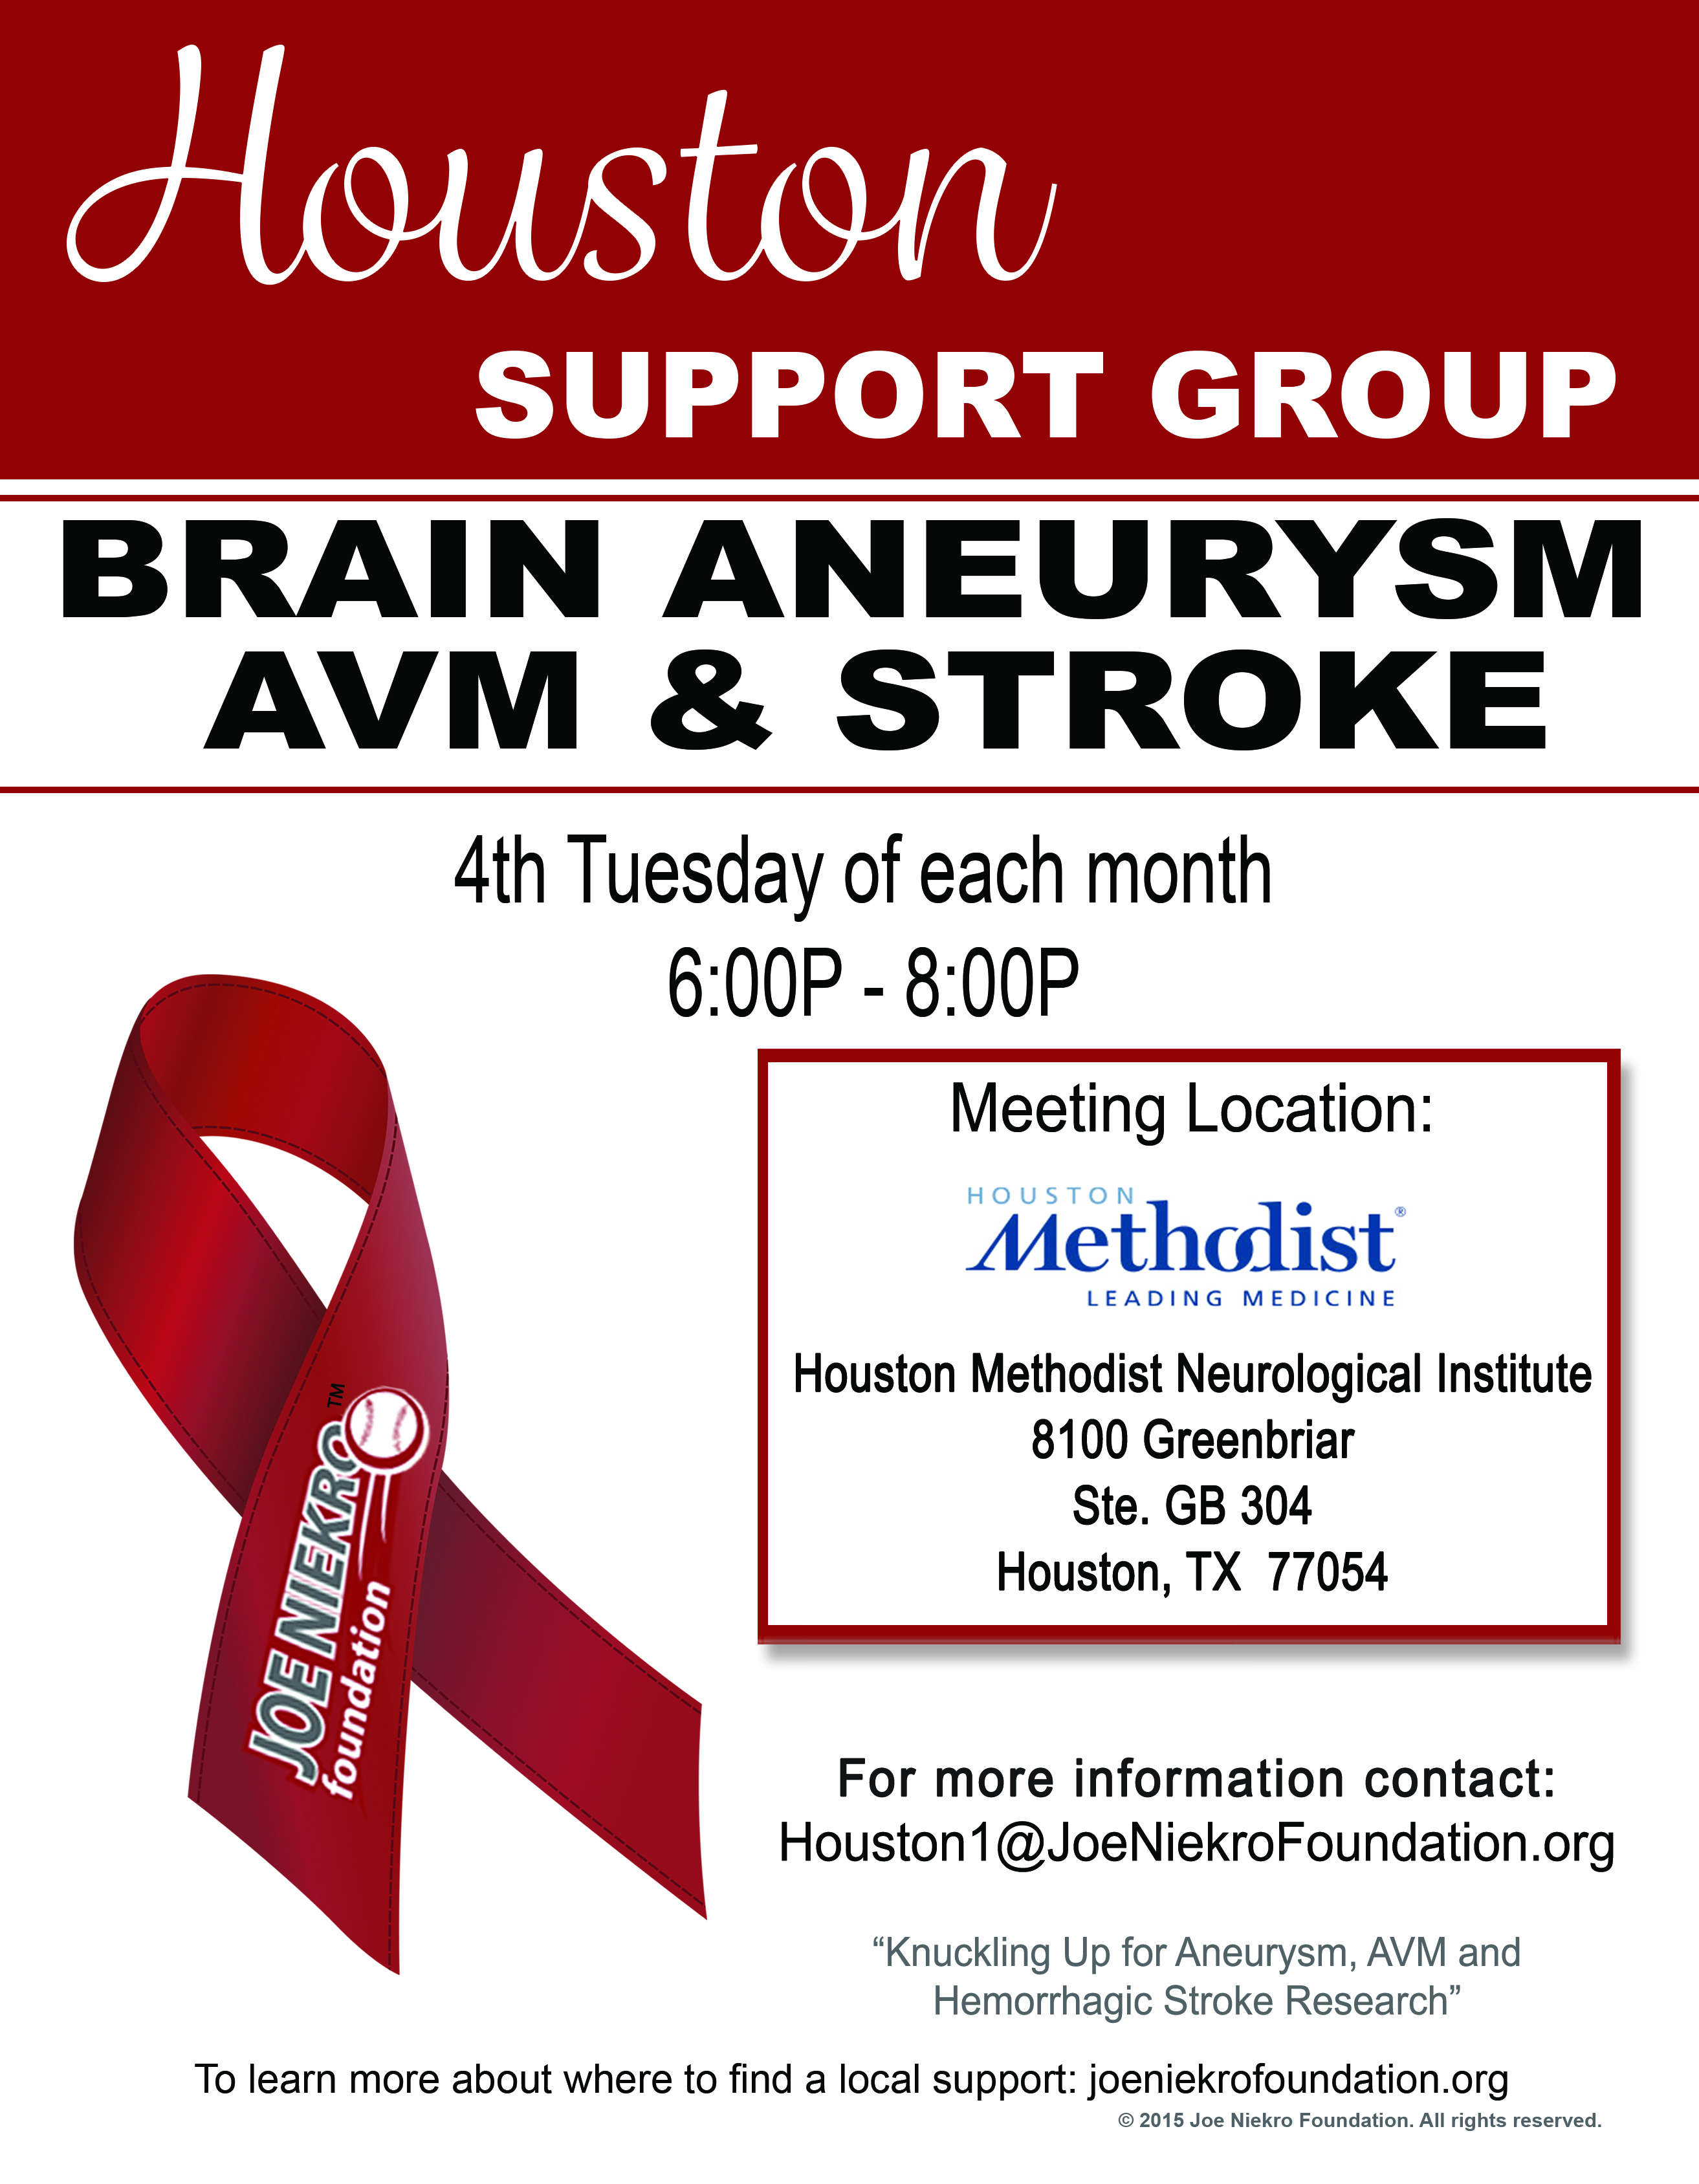 http://www.joeniekrofoundation.com/patient-caregiver-support/support-groups/locations/attachment/houston-methodist-poster-2/